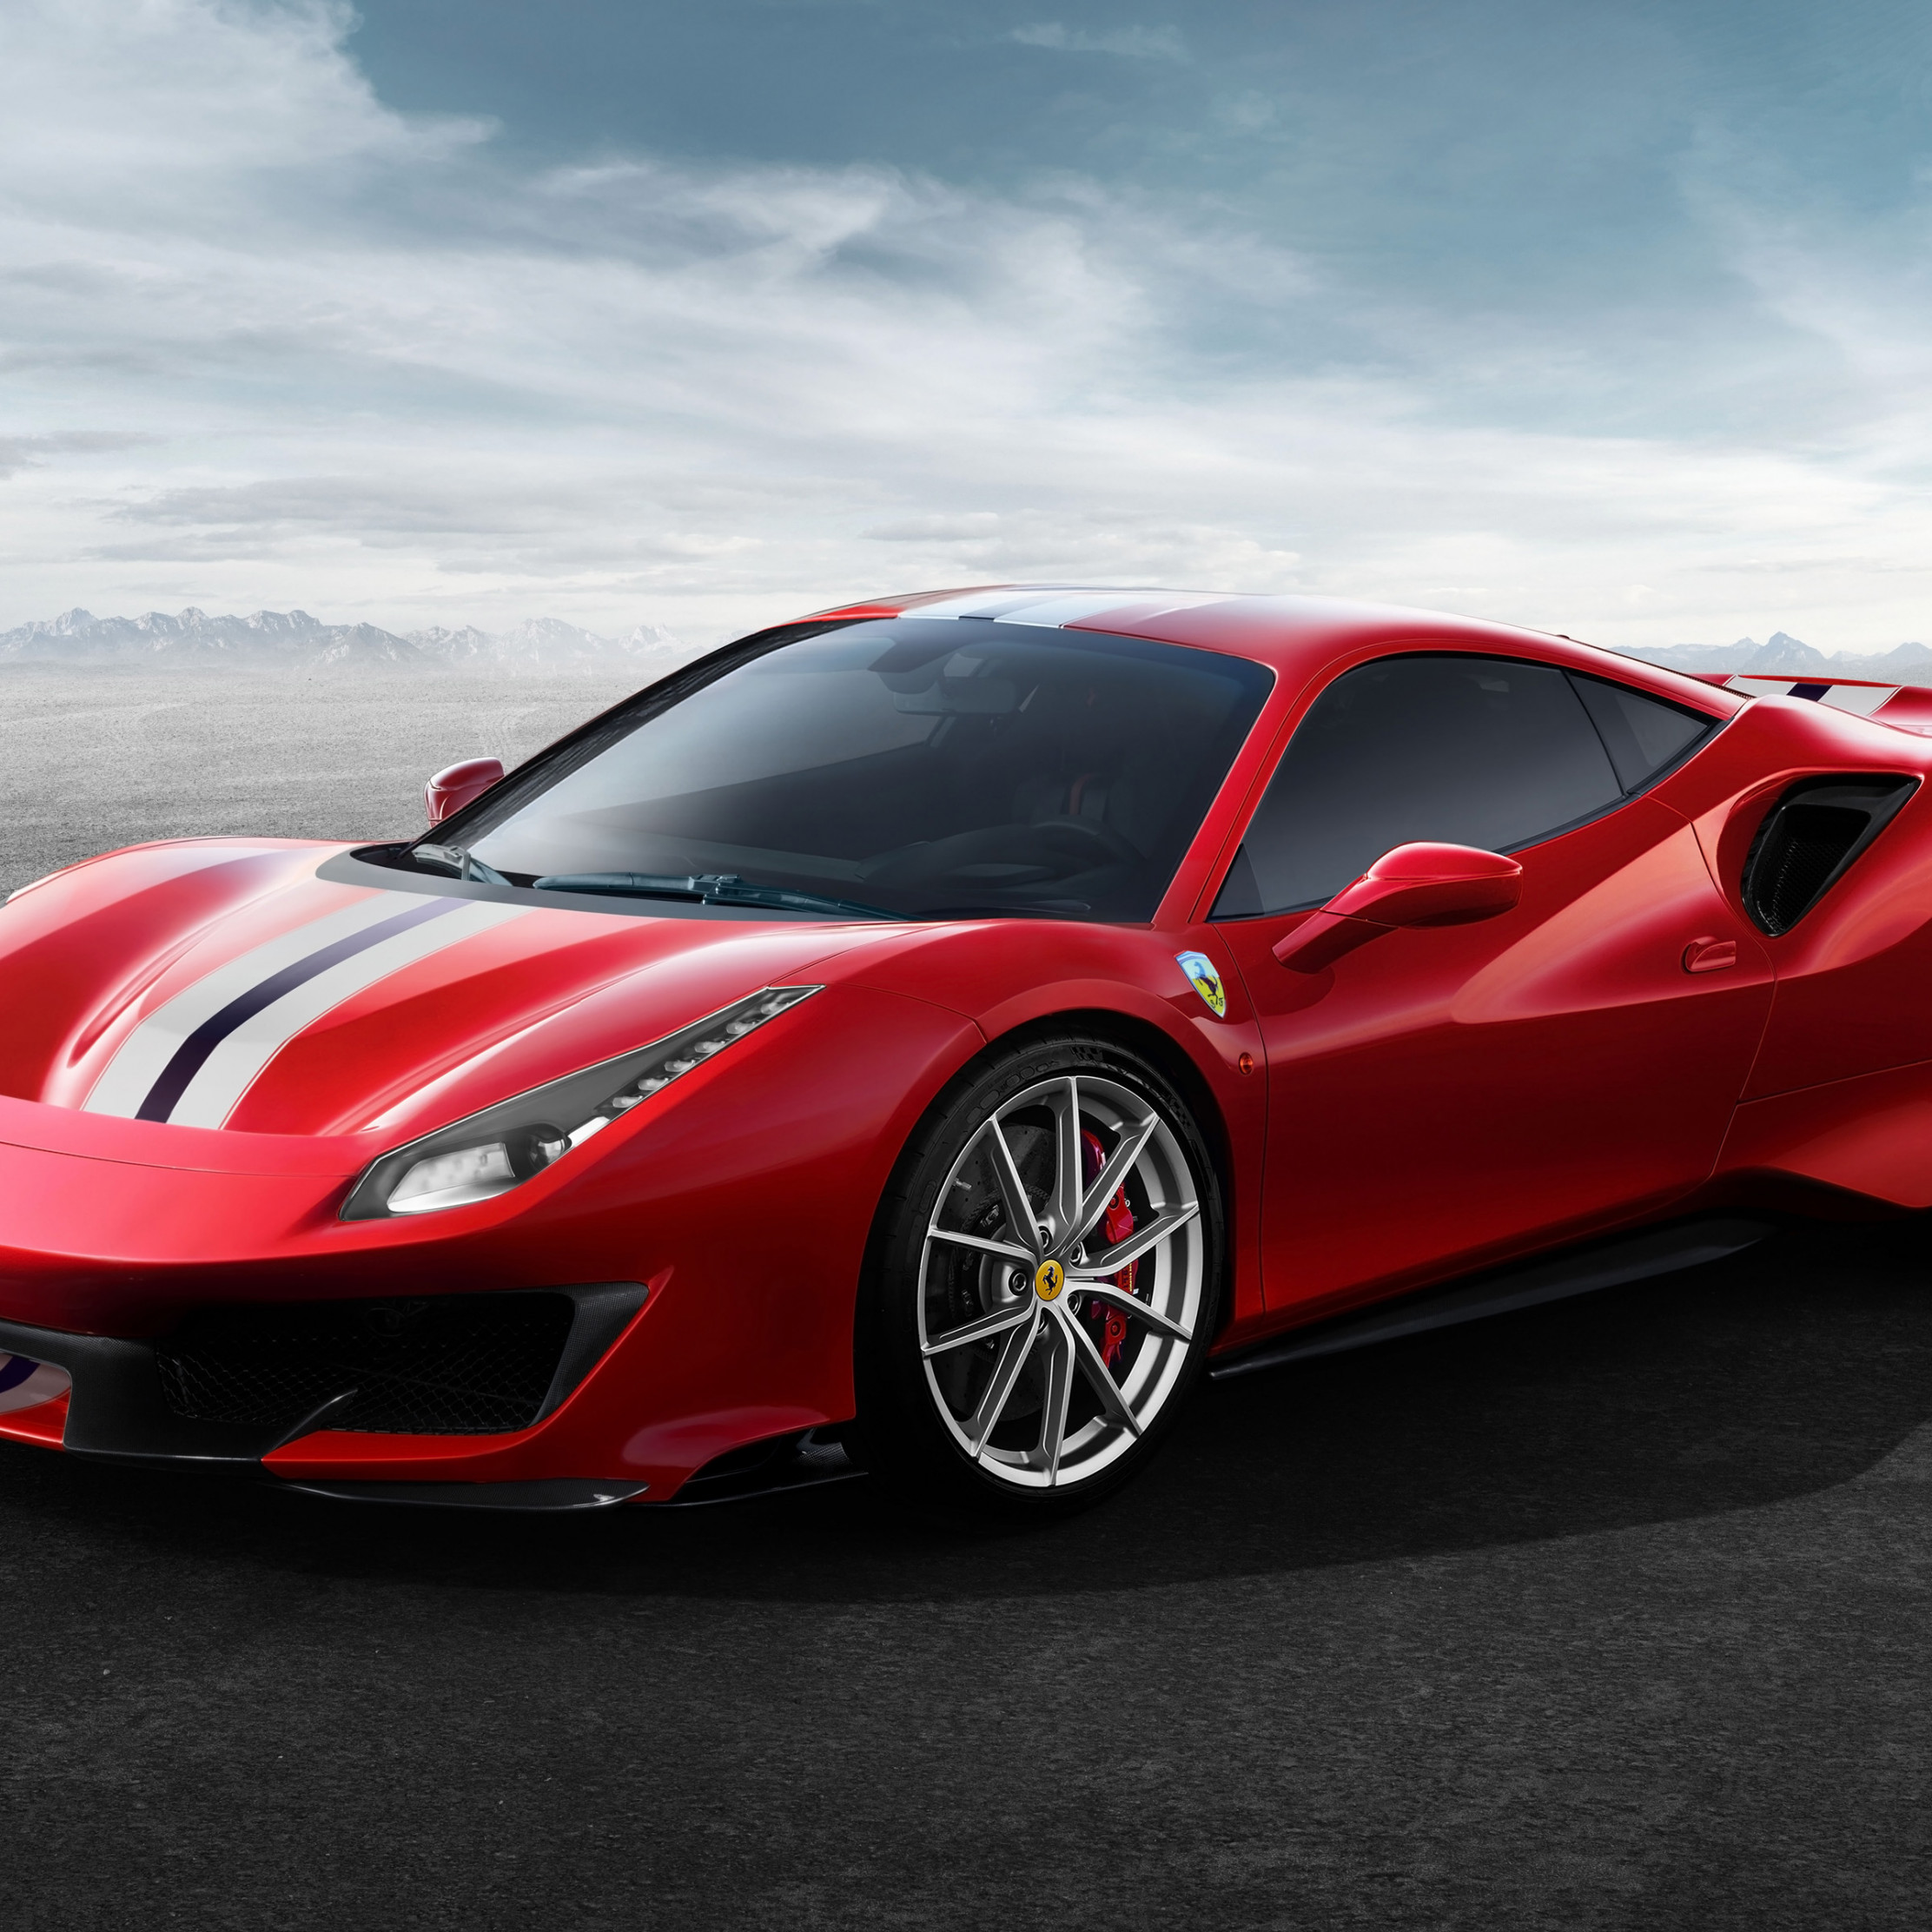 Ferrari 488 Pista wallpaper 2224x2224